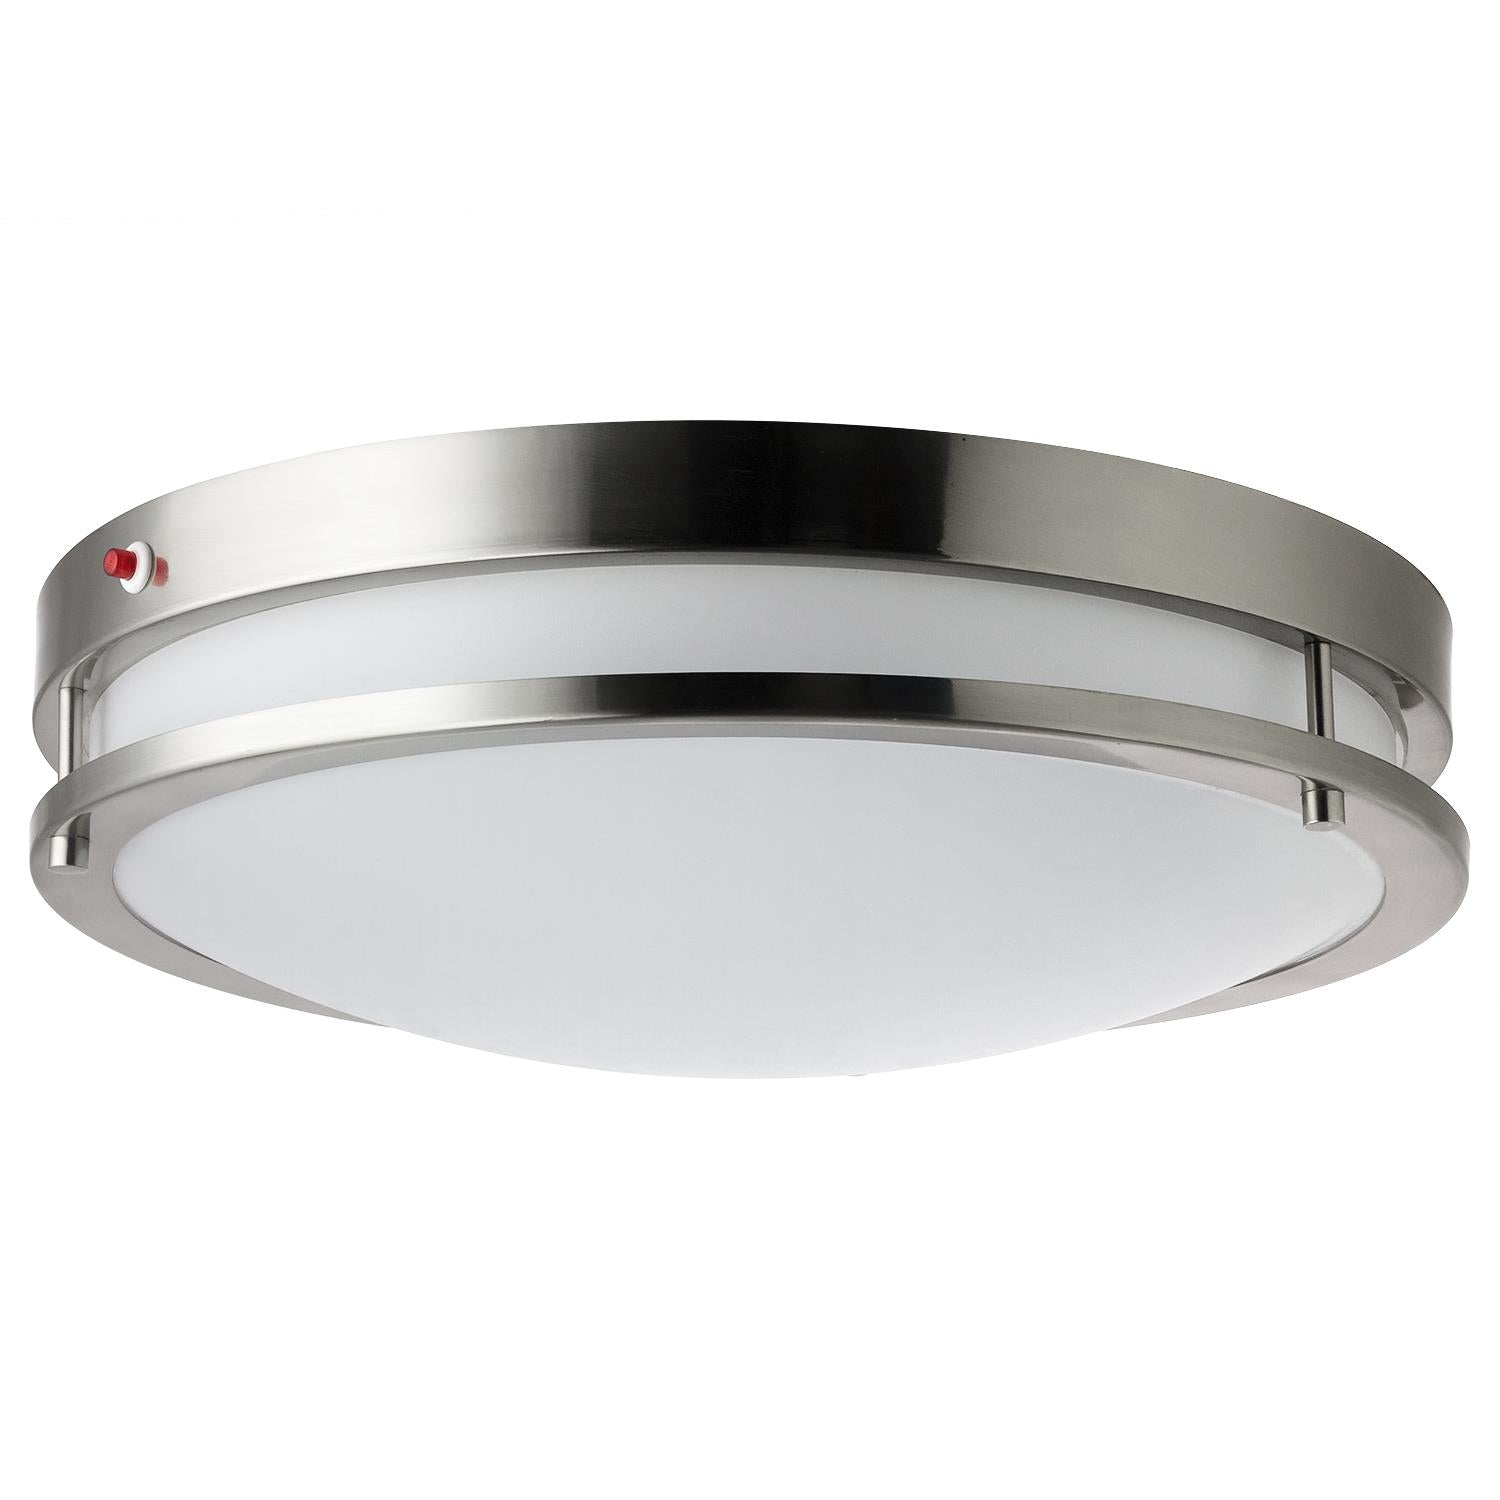 SUNLITE 23w Dome Ceiling Light Fixture in Brushed Nickel - 3000K